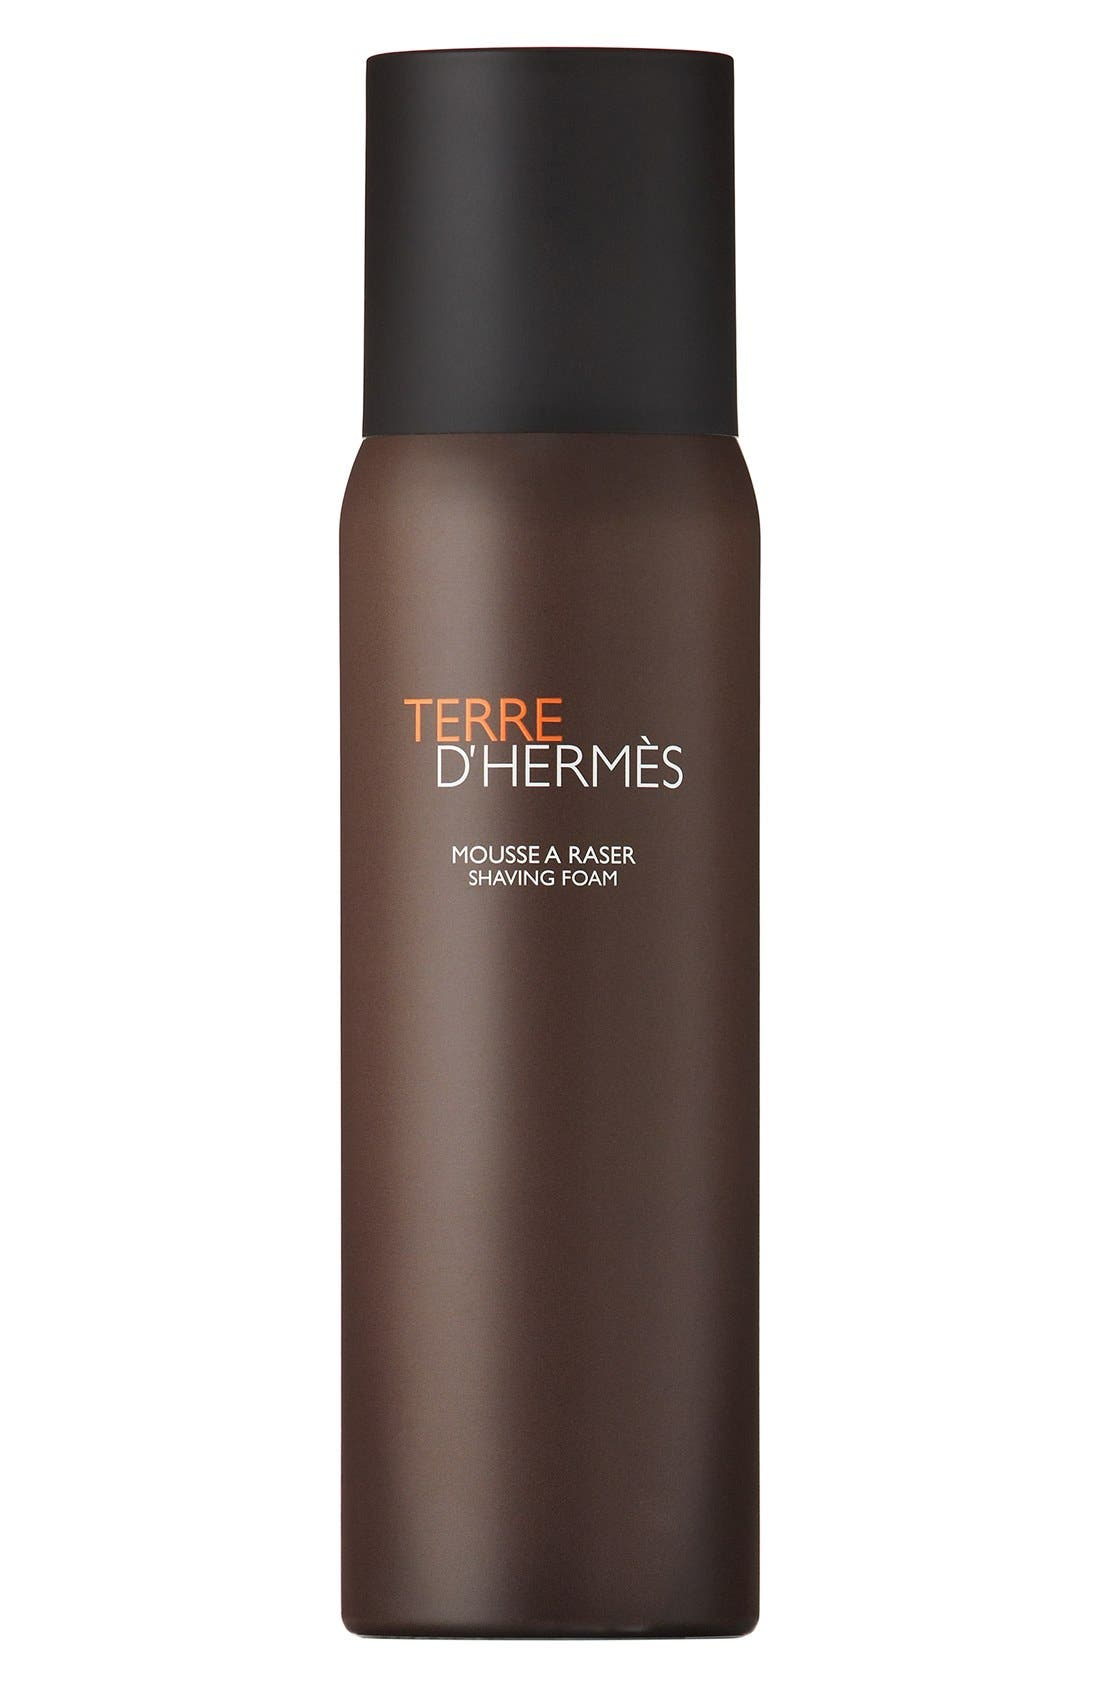 Terre d'Hermès - Shaving foam,                             Main thumbnail 1, color,                             000